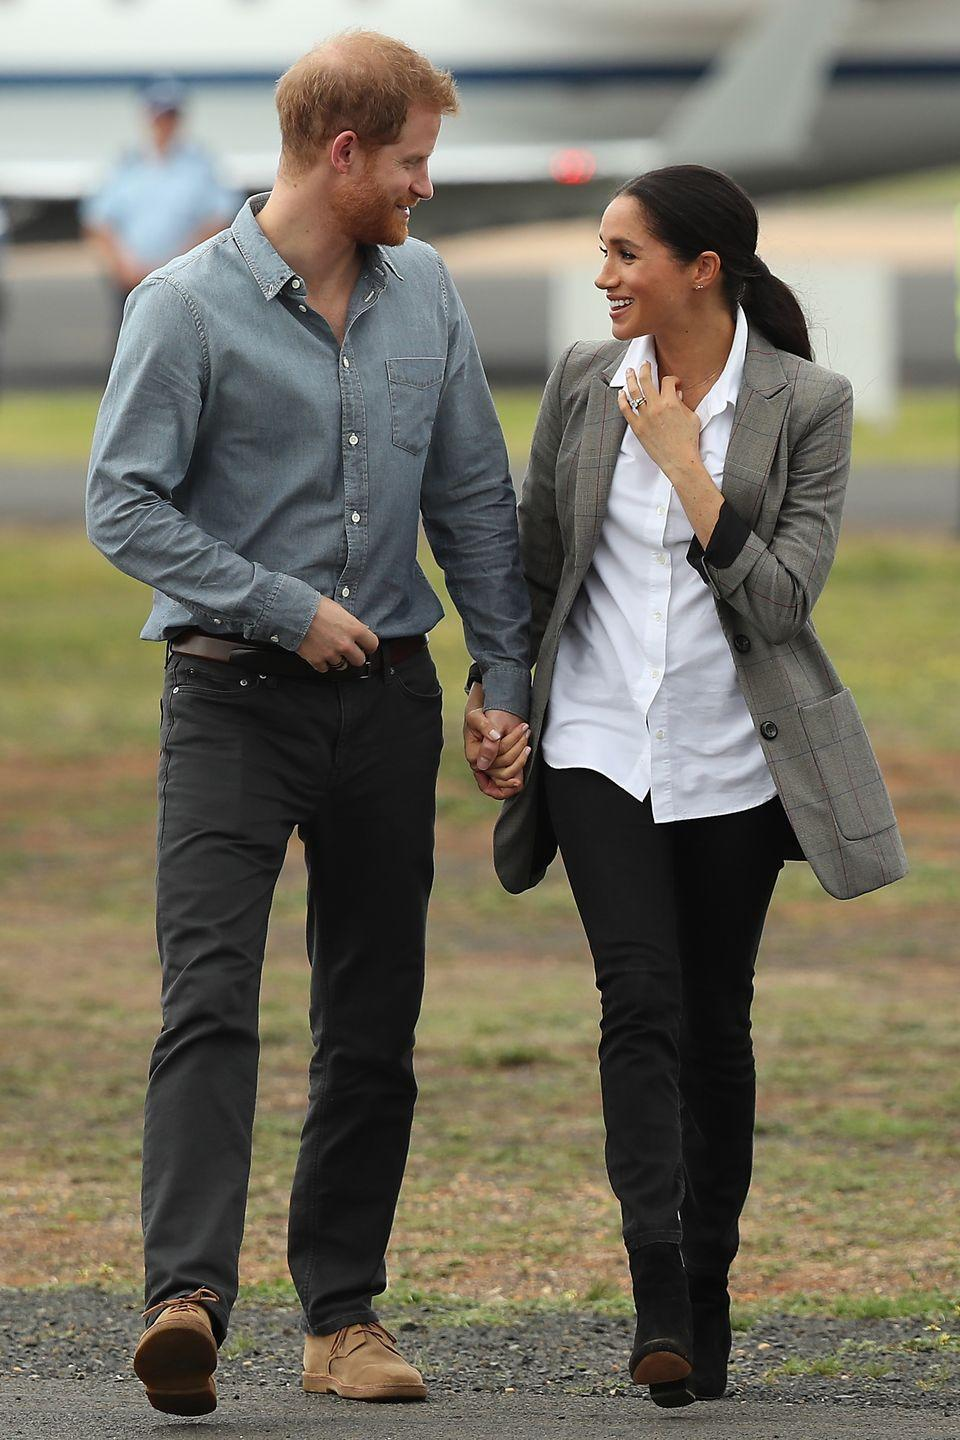 """<p>Arriving in Dubbo, Australia with Prince Harry, Meghan wore a white button-down from the brand Maison Kitsuné.</p><p><a class=""""link rapid-noclick-resp"""" href=""""https://go.redirectingat.com?id=74968X1596630&url=https%3A%2F%2Fwww.ssense.com%2Fen-us%2Fwomen%2Fproduct%2Fmaison-kitsune%2Fwhite-fox-head-embroidery-classic-shirt%2F6961641&sref=https%3A%2F%2Fwww.townandcountrymag.com%2Fsociety%2Ftradition%2Fg36386449%2Fmeghan-markle-white-button-down-shirts%2F"""" rel=""""nofollow noopener"""" target=""""_blank"""" data-ylk=""""slk:Shop Now"""">Shop Now</a></p>"""